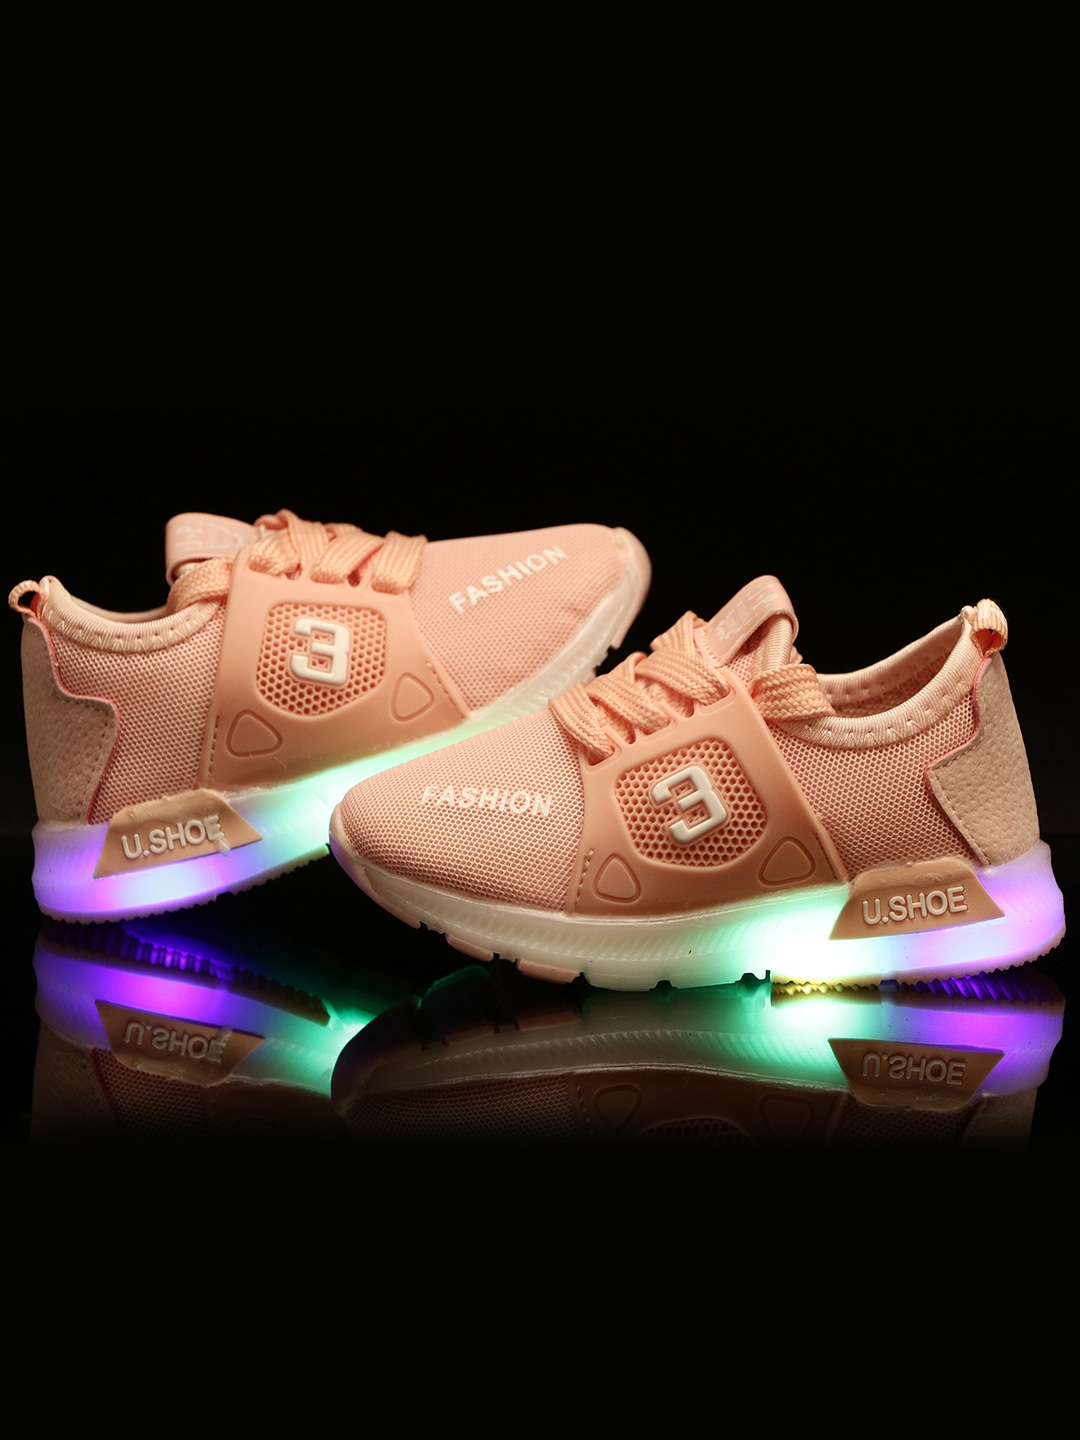 Peach-Coloured LED Lightweight Sneakers